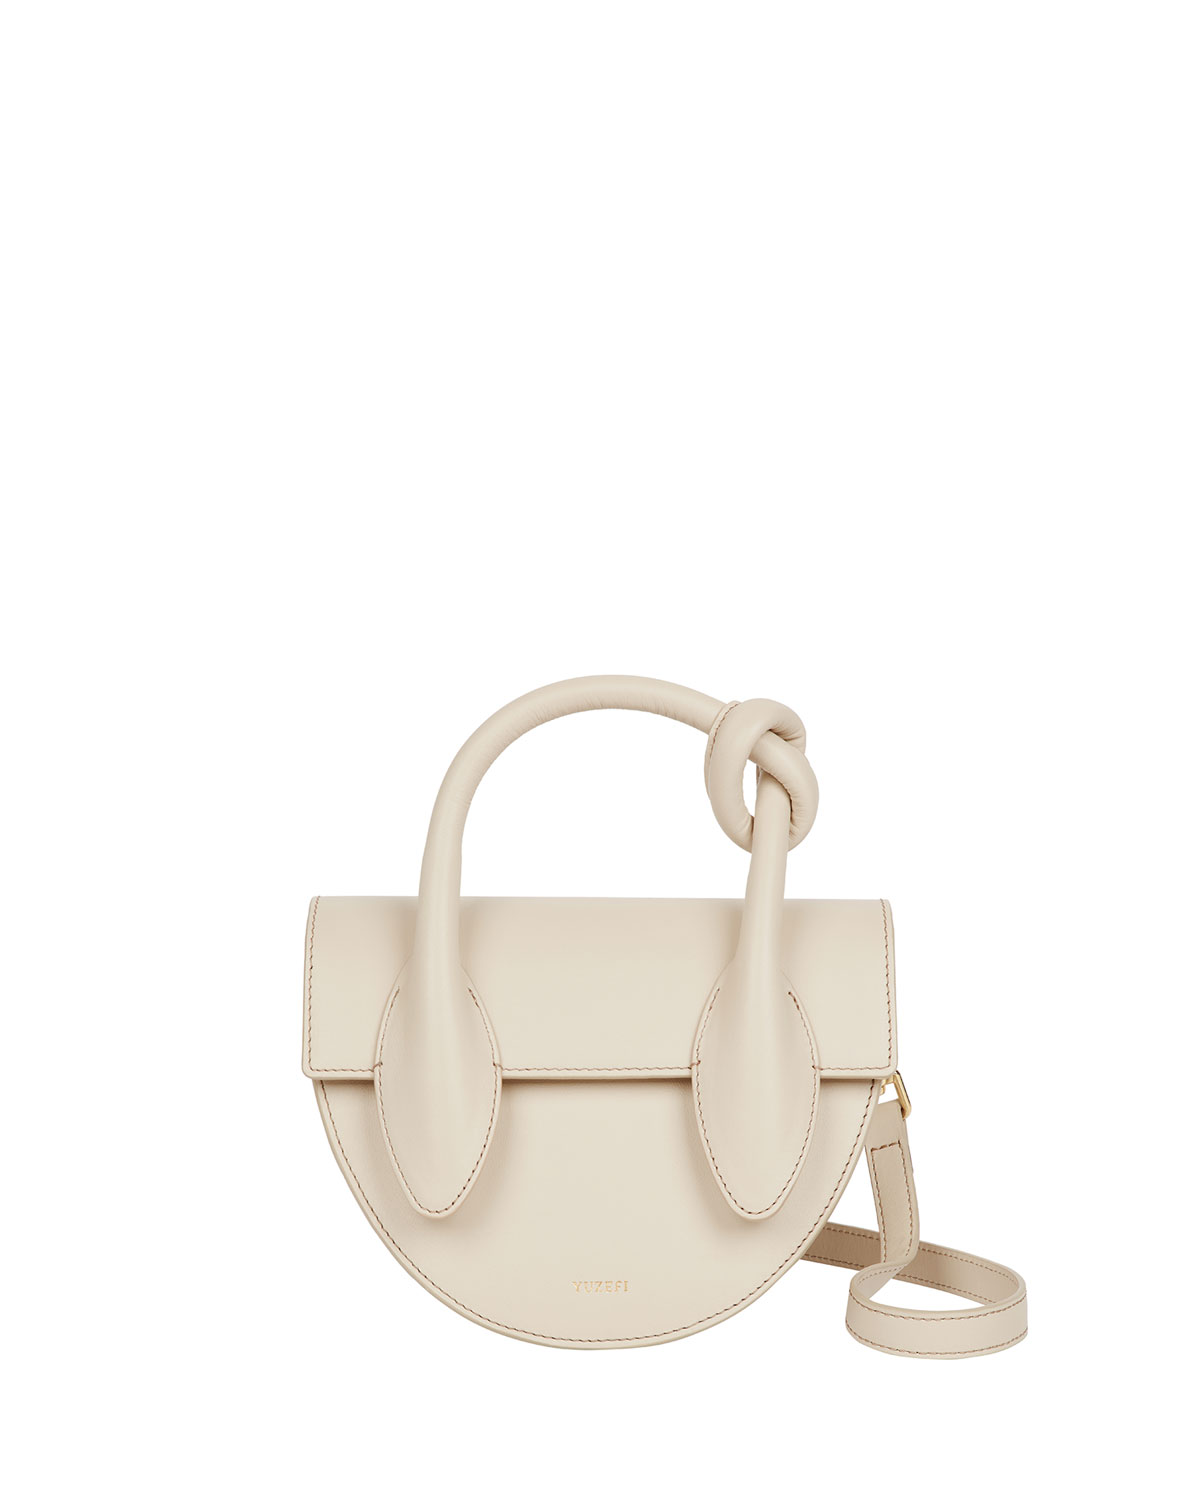 Yuzefi DOLORES LEATHER KNOT TOP-HANDLE BAG, OATMEAL